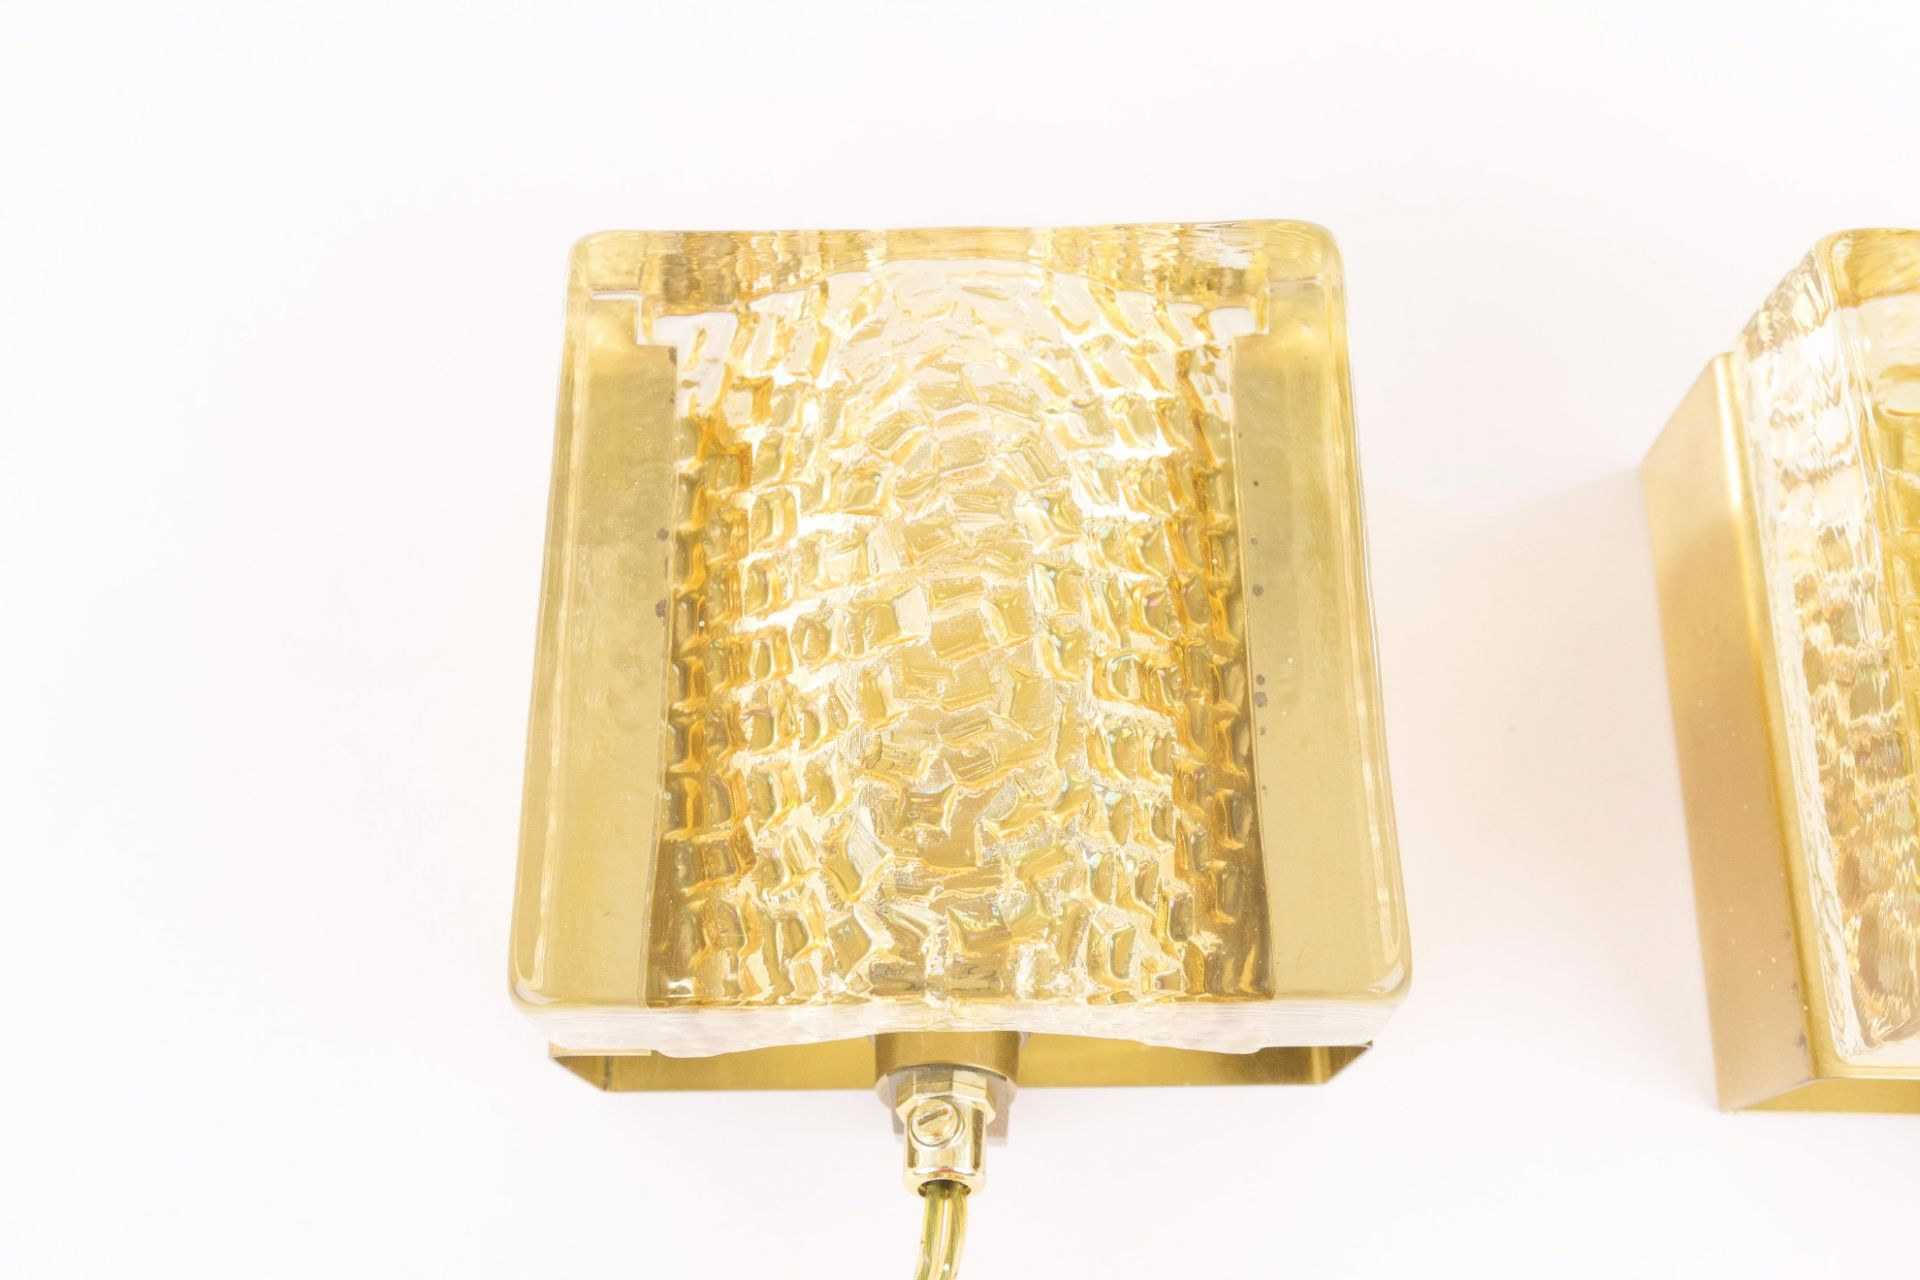 Pair of Kalmar glass and brass Wall lamps in gold by Vitrika, 1970s